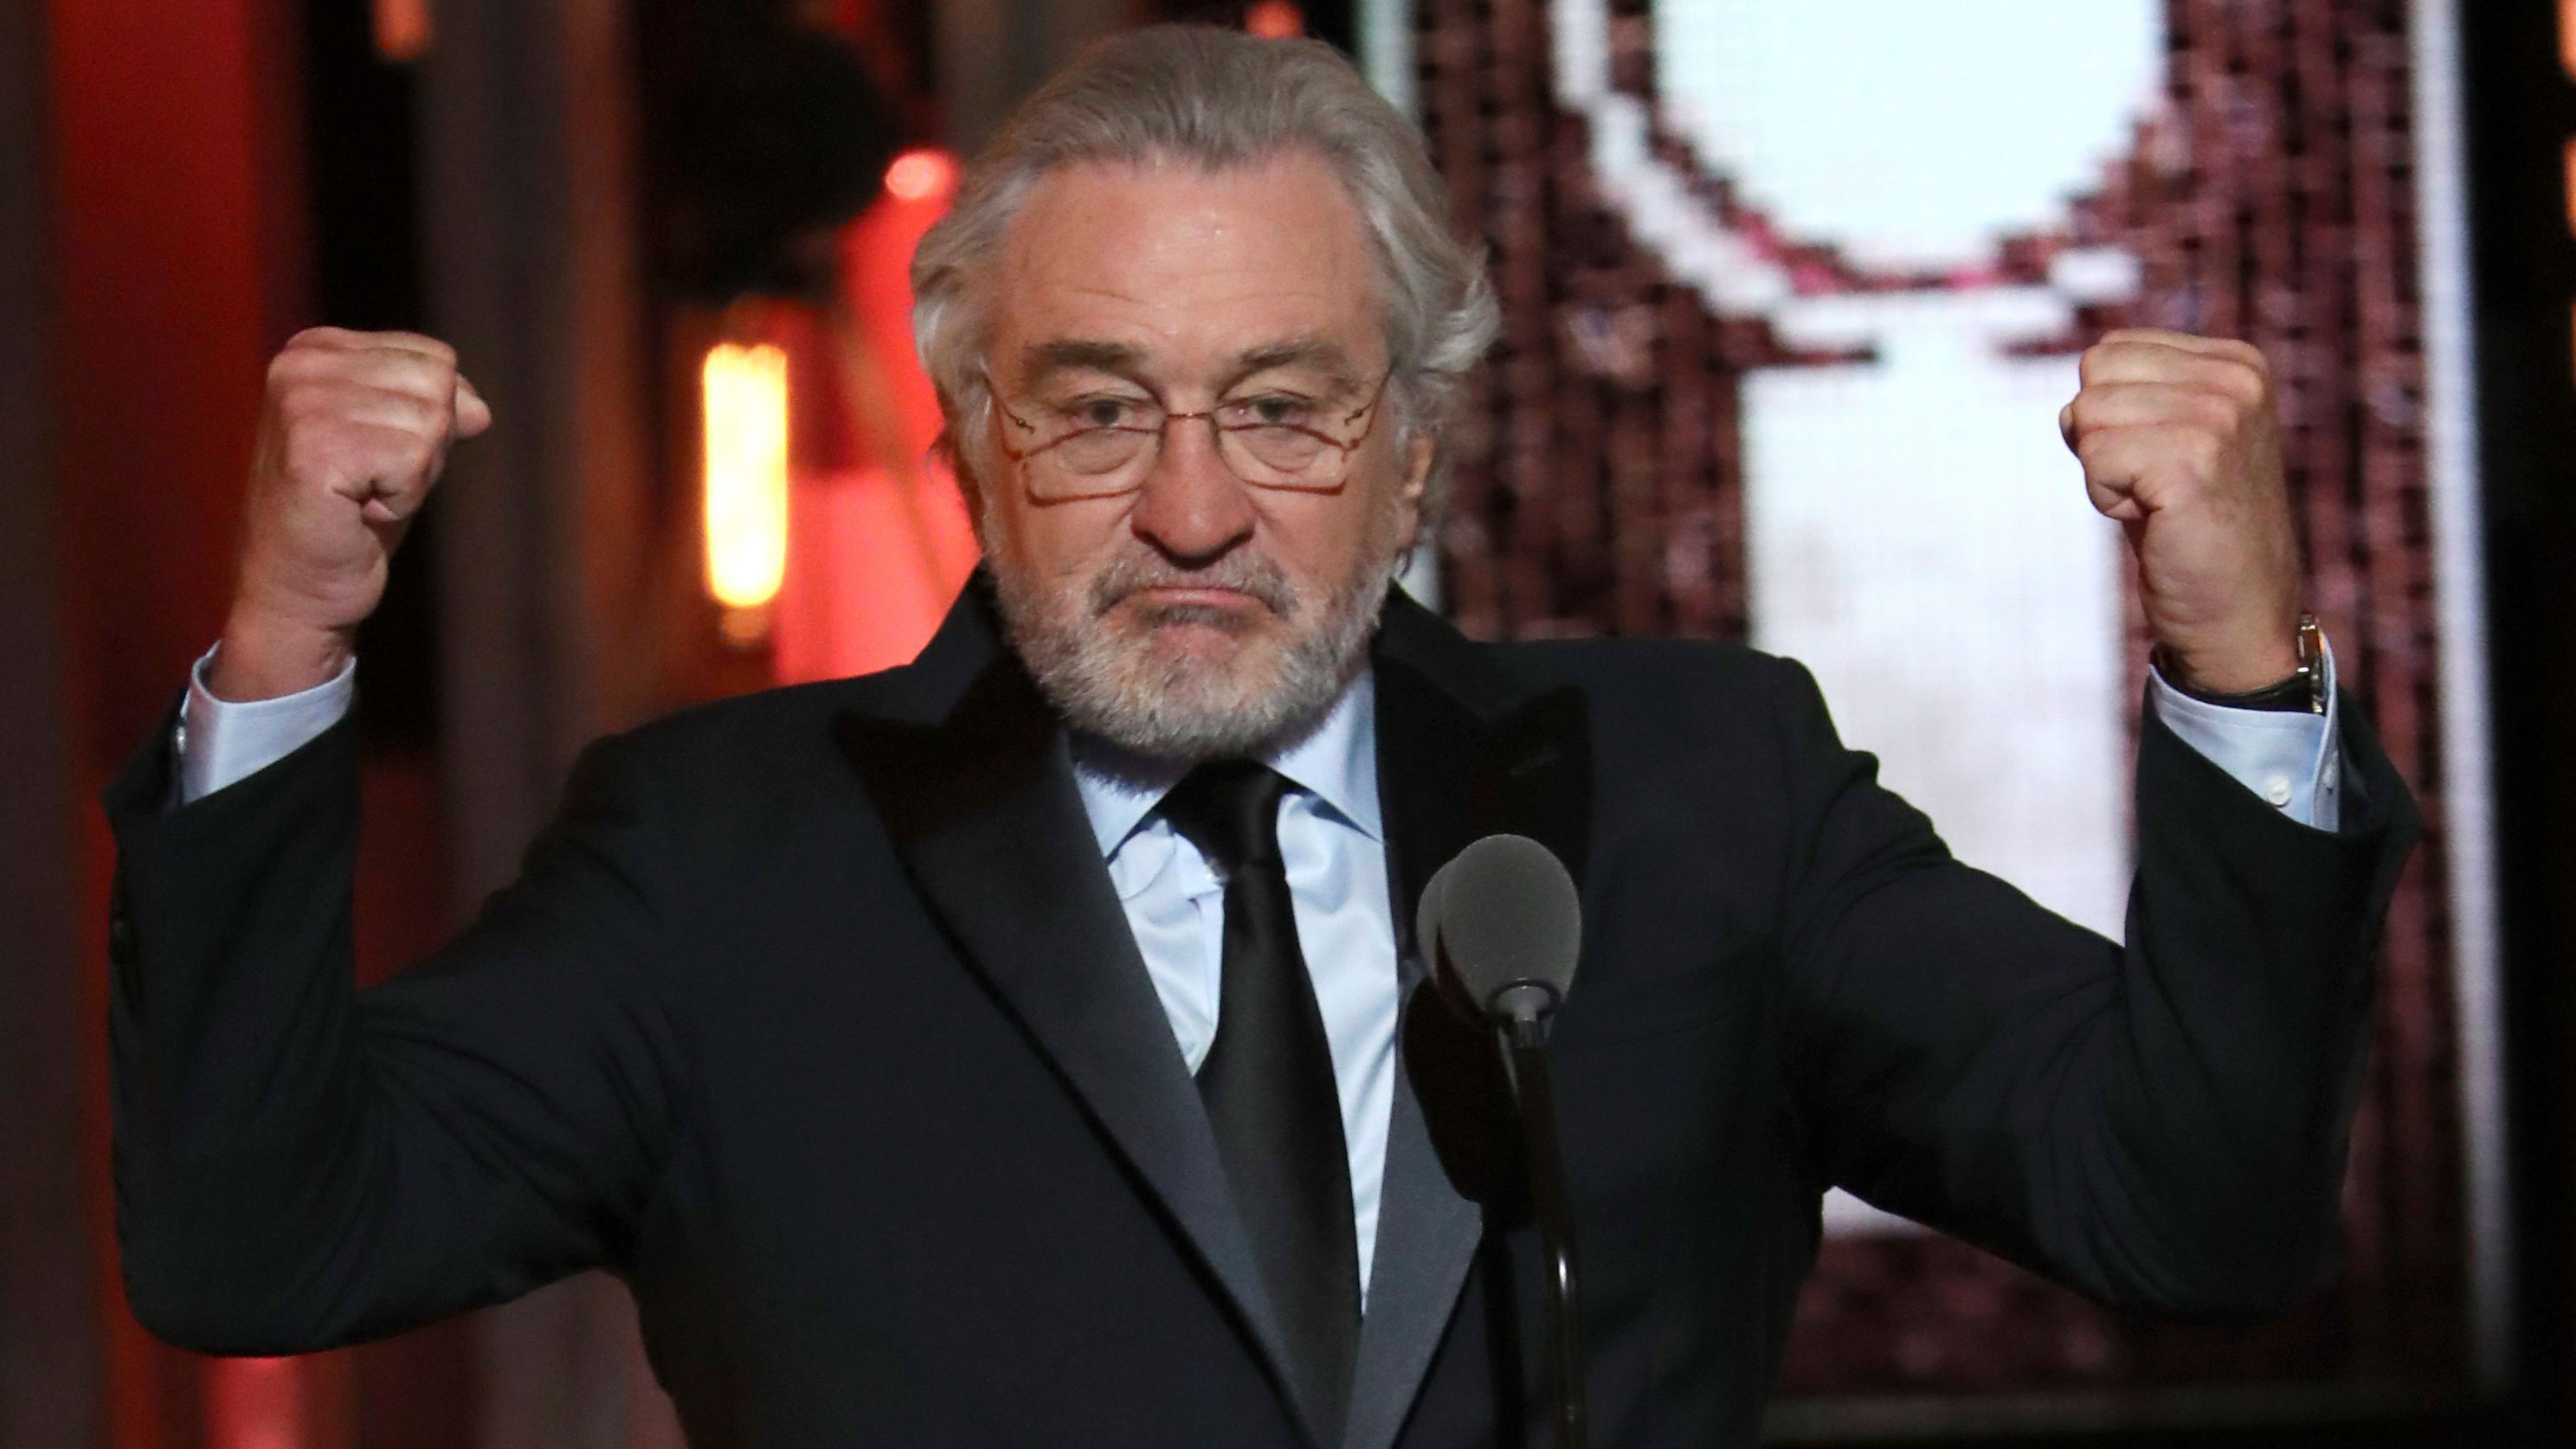 Robert De Niro says 'F--- Trump' onstage at Tonys, gets standing ovation